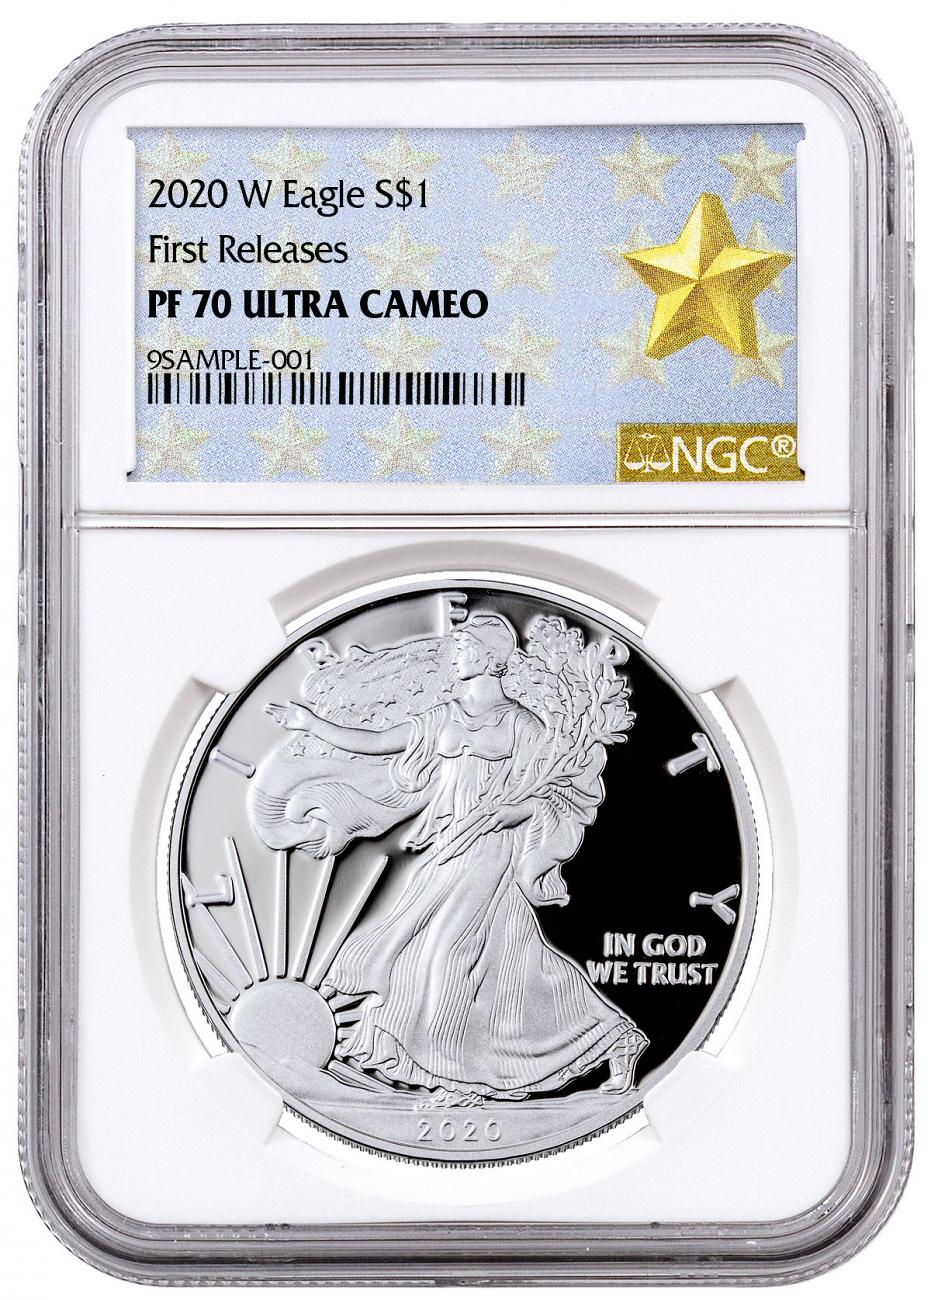 2020-W 1 oz Proof Silver American Eagle $1 Coin NGC PF70 UC FR West Point Gold Star Label